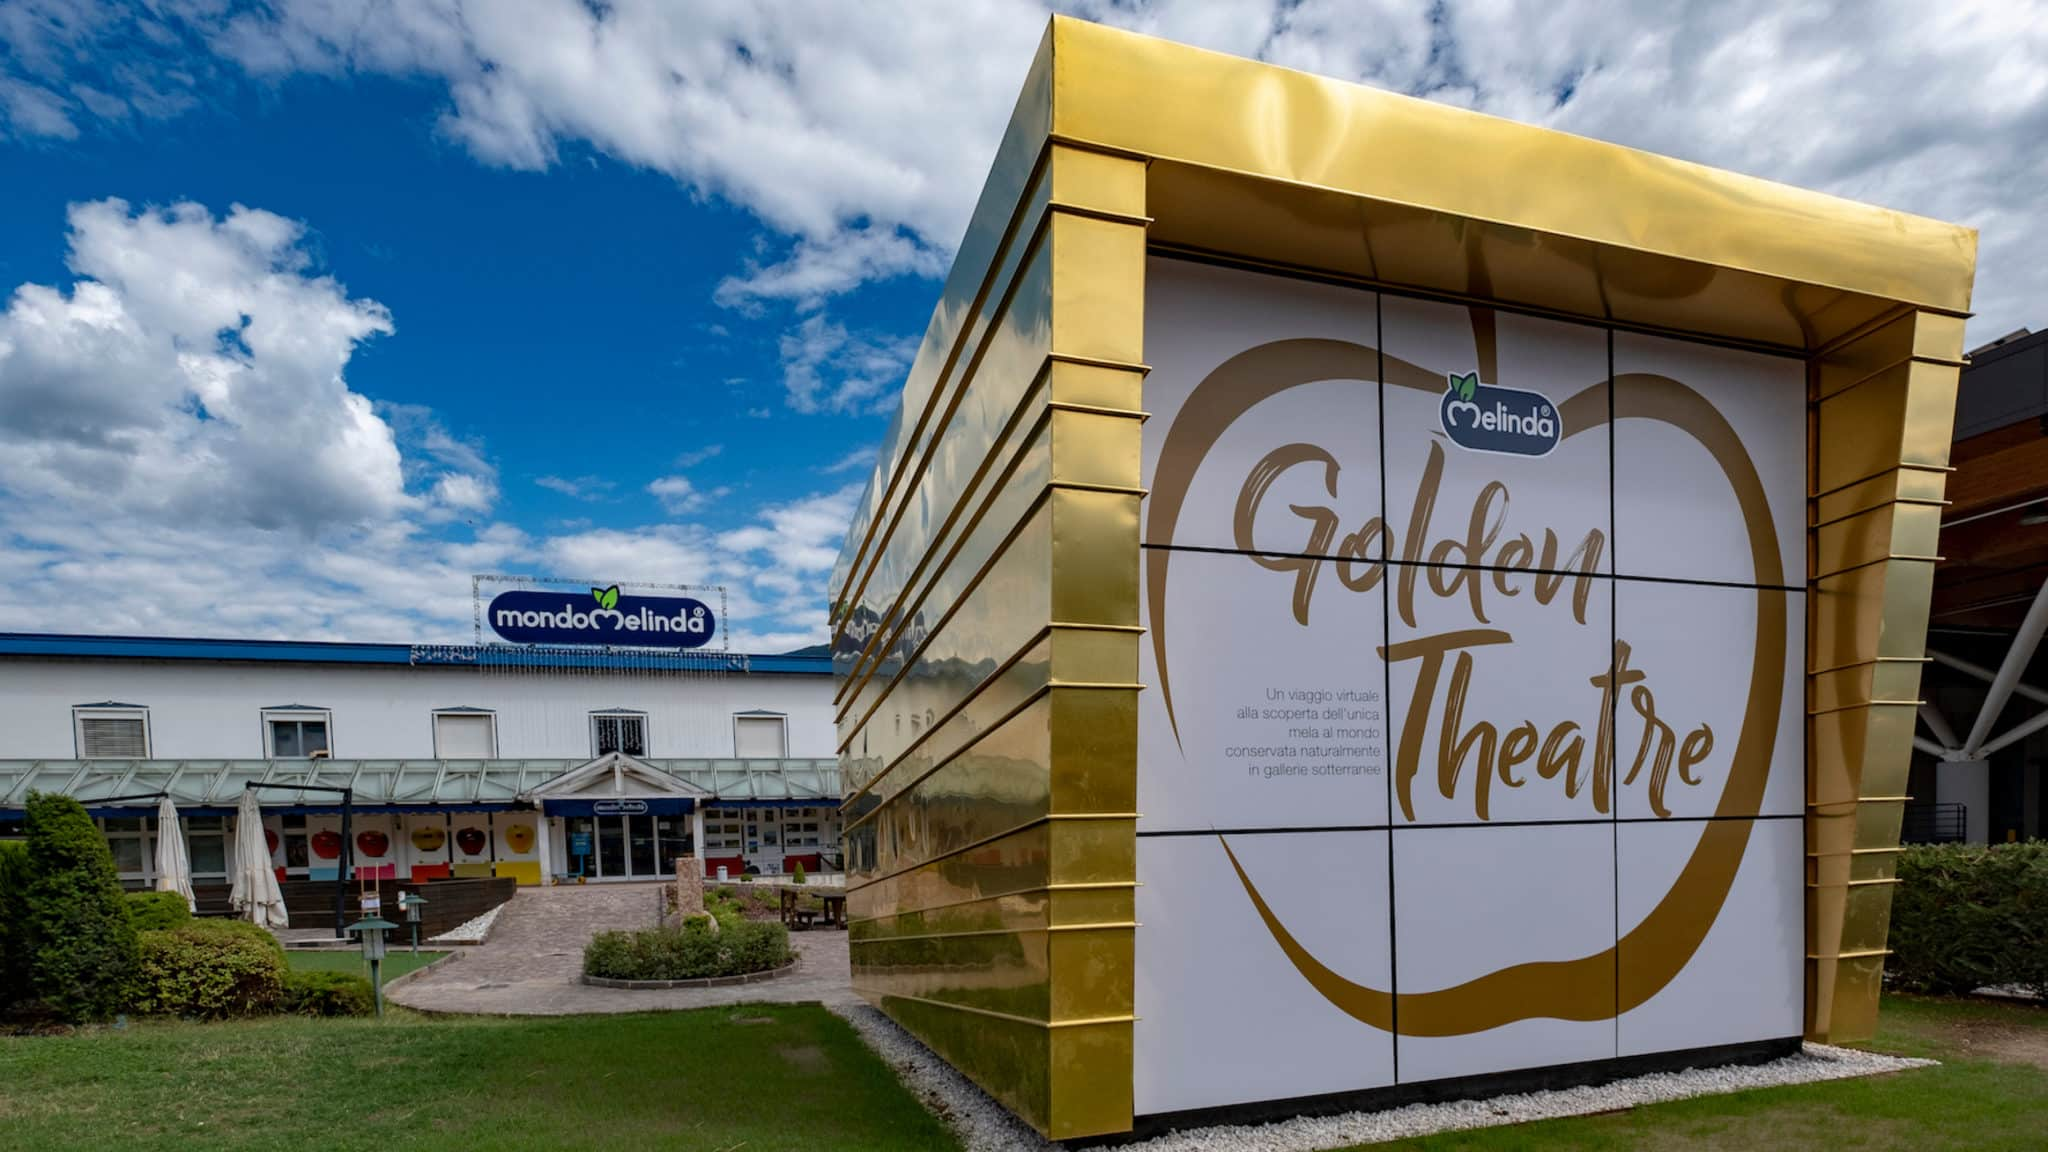 Melinda Golden Theatre